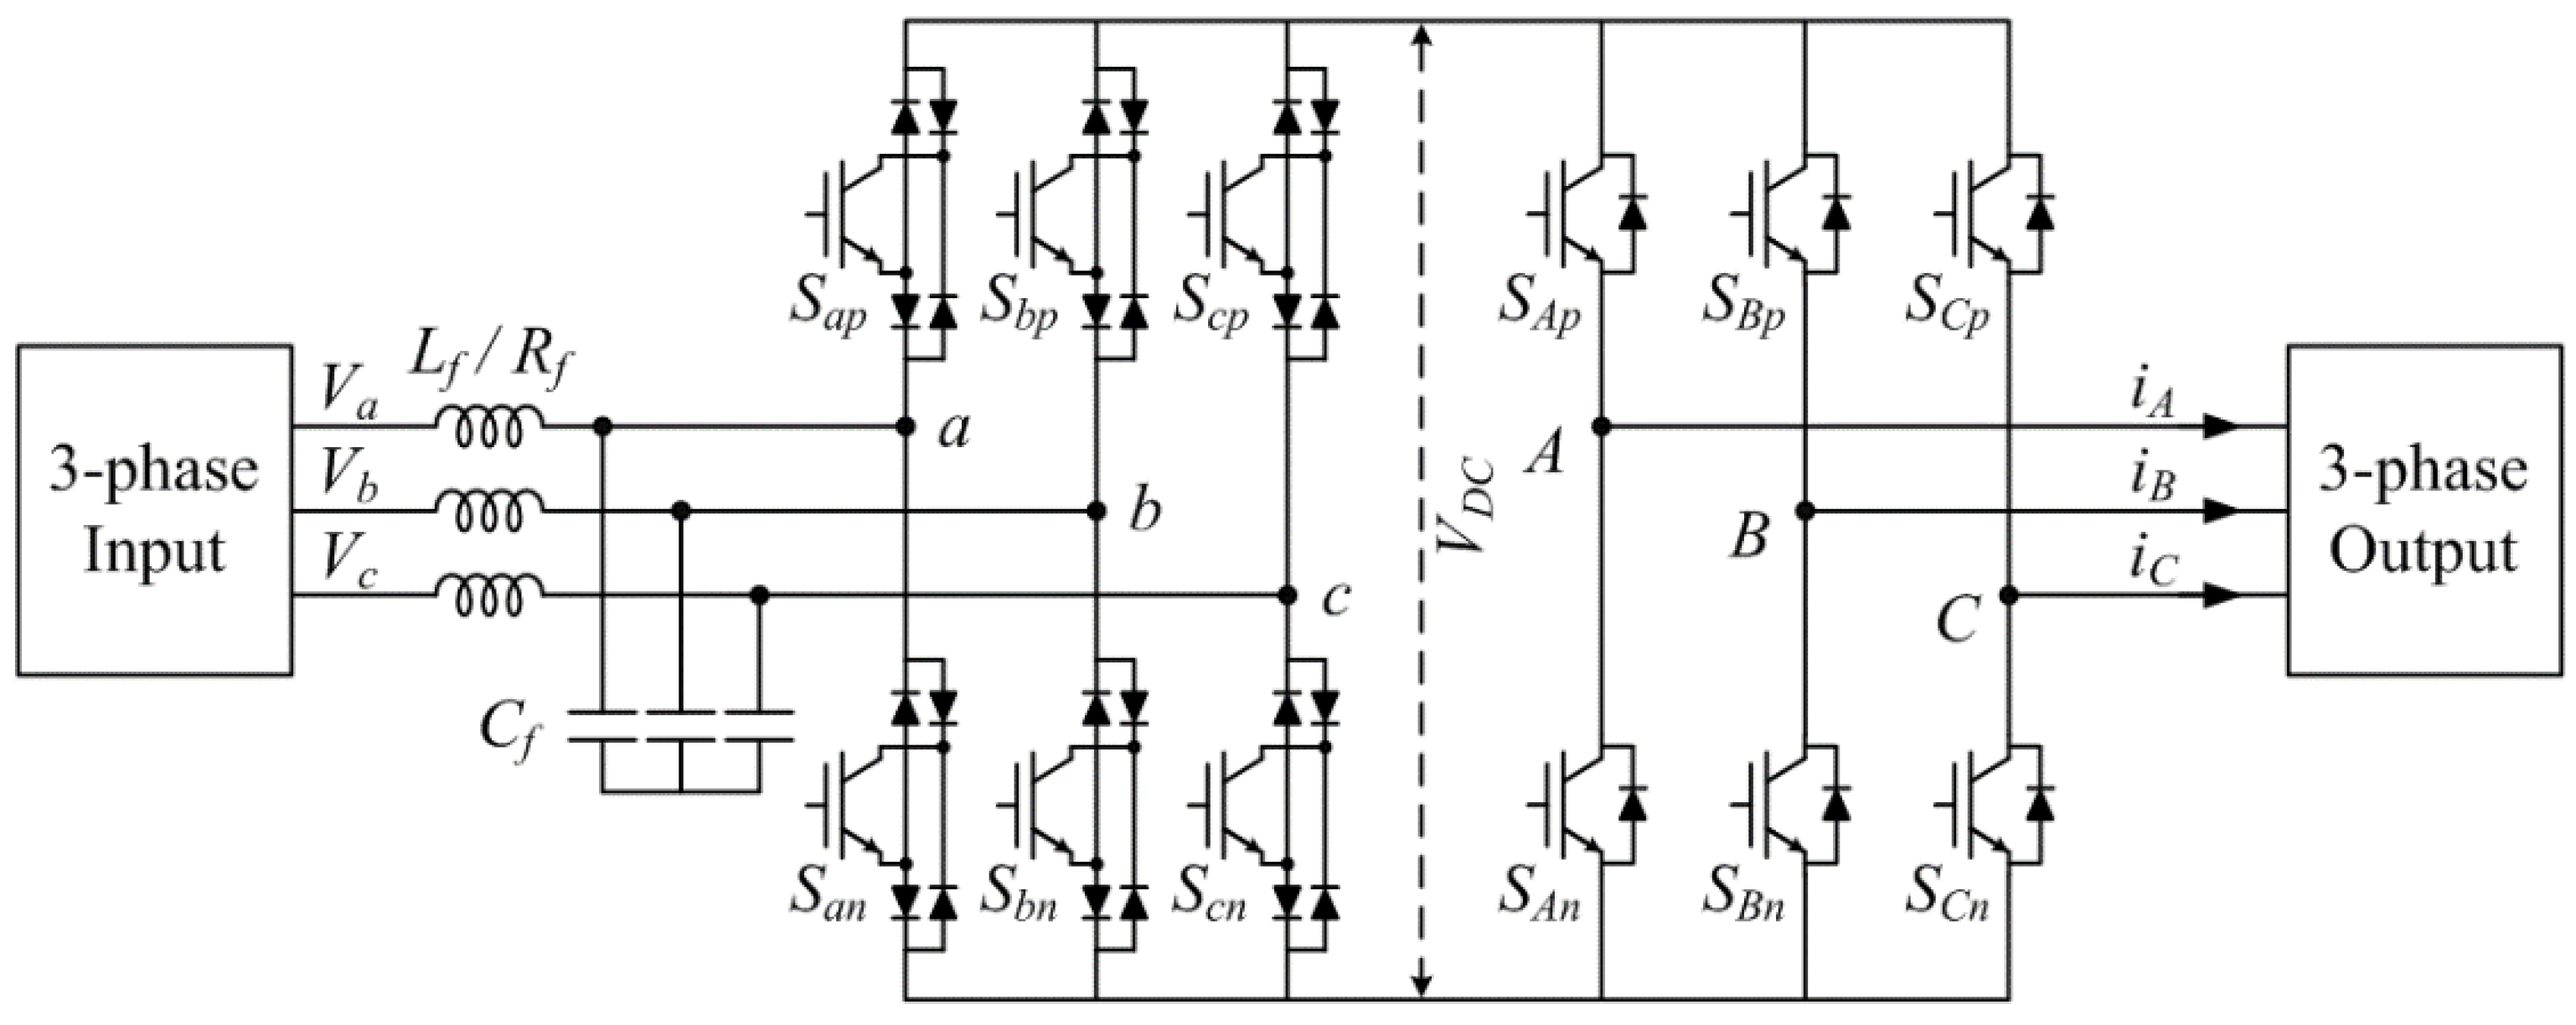 Energies | Free Full-Text | Indirect Matrix Converter for